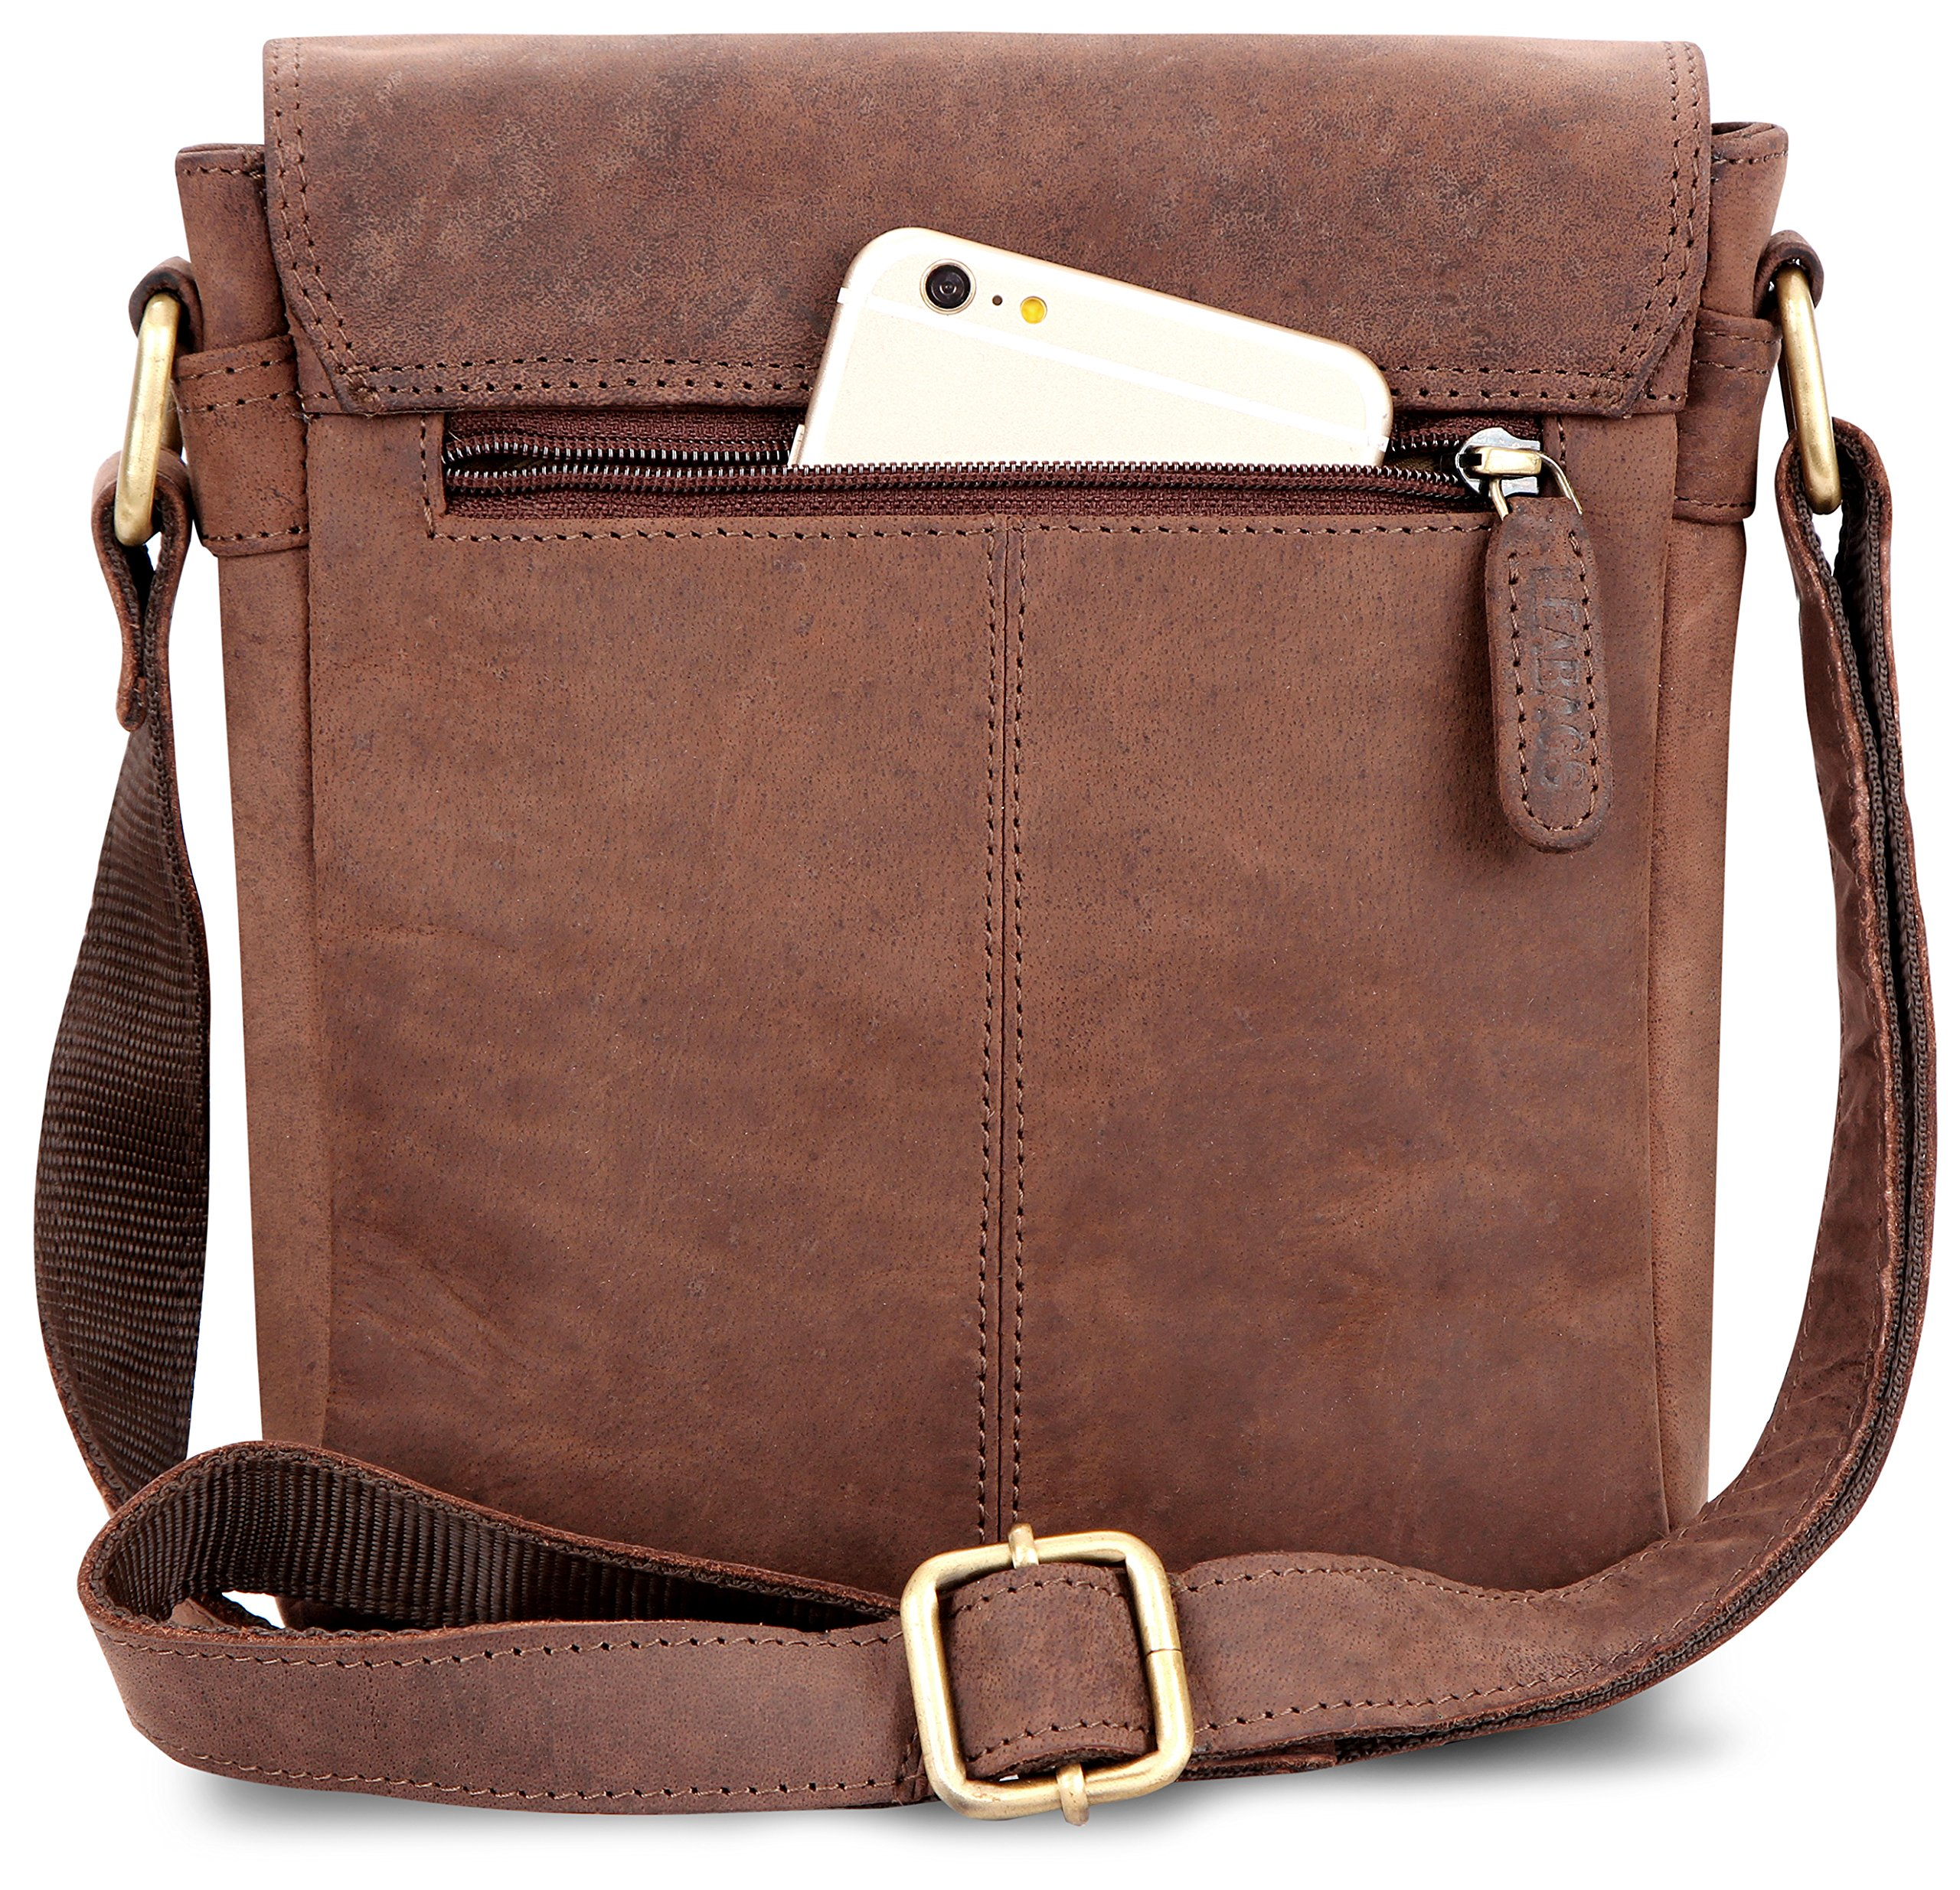 LEABAGS Weston genuine buffalo leather city bag in vintage style - Nutmeg by LEABAGS (Image #5)